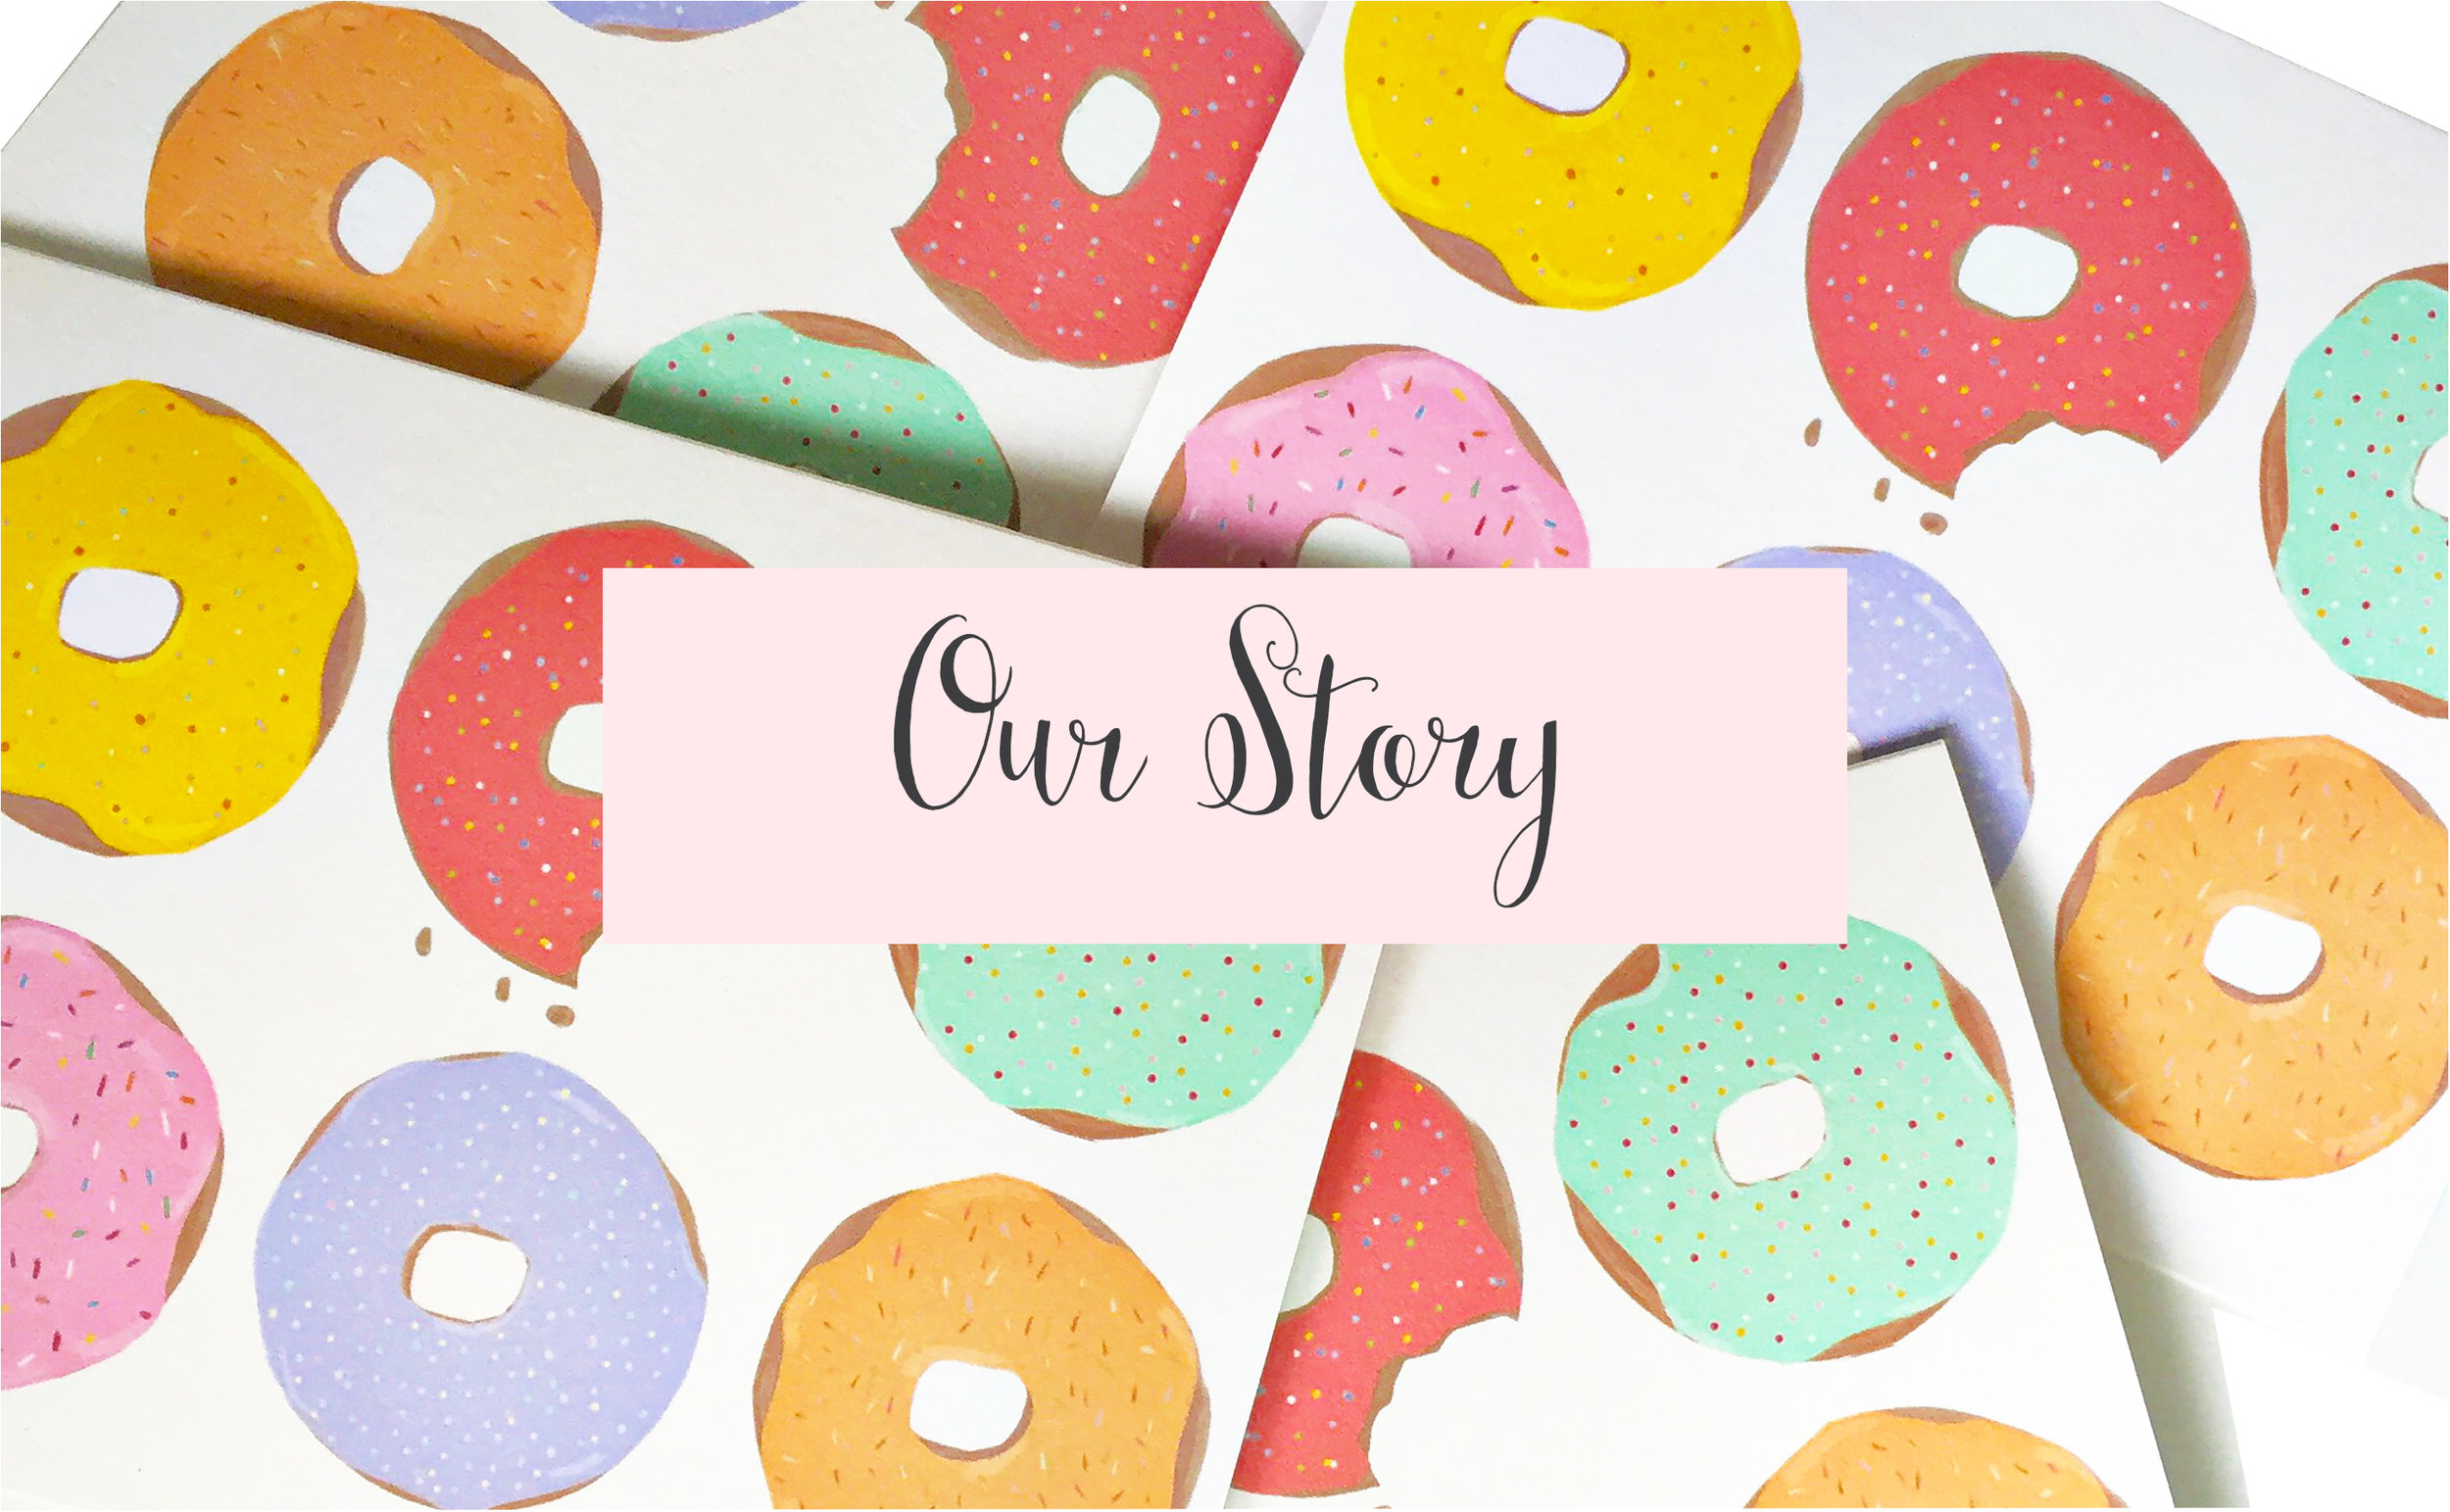 Stationery, greeting cards, invitations, party decor and so much more!